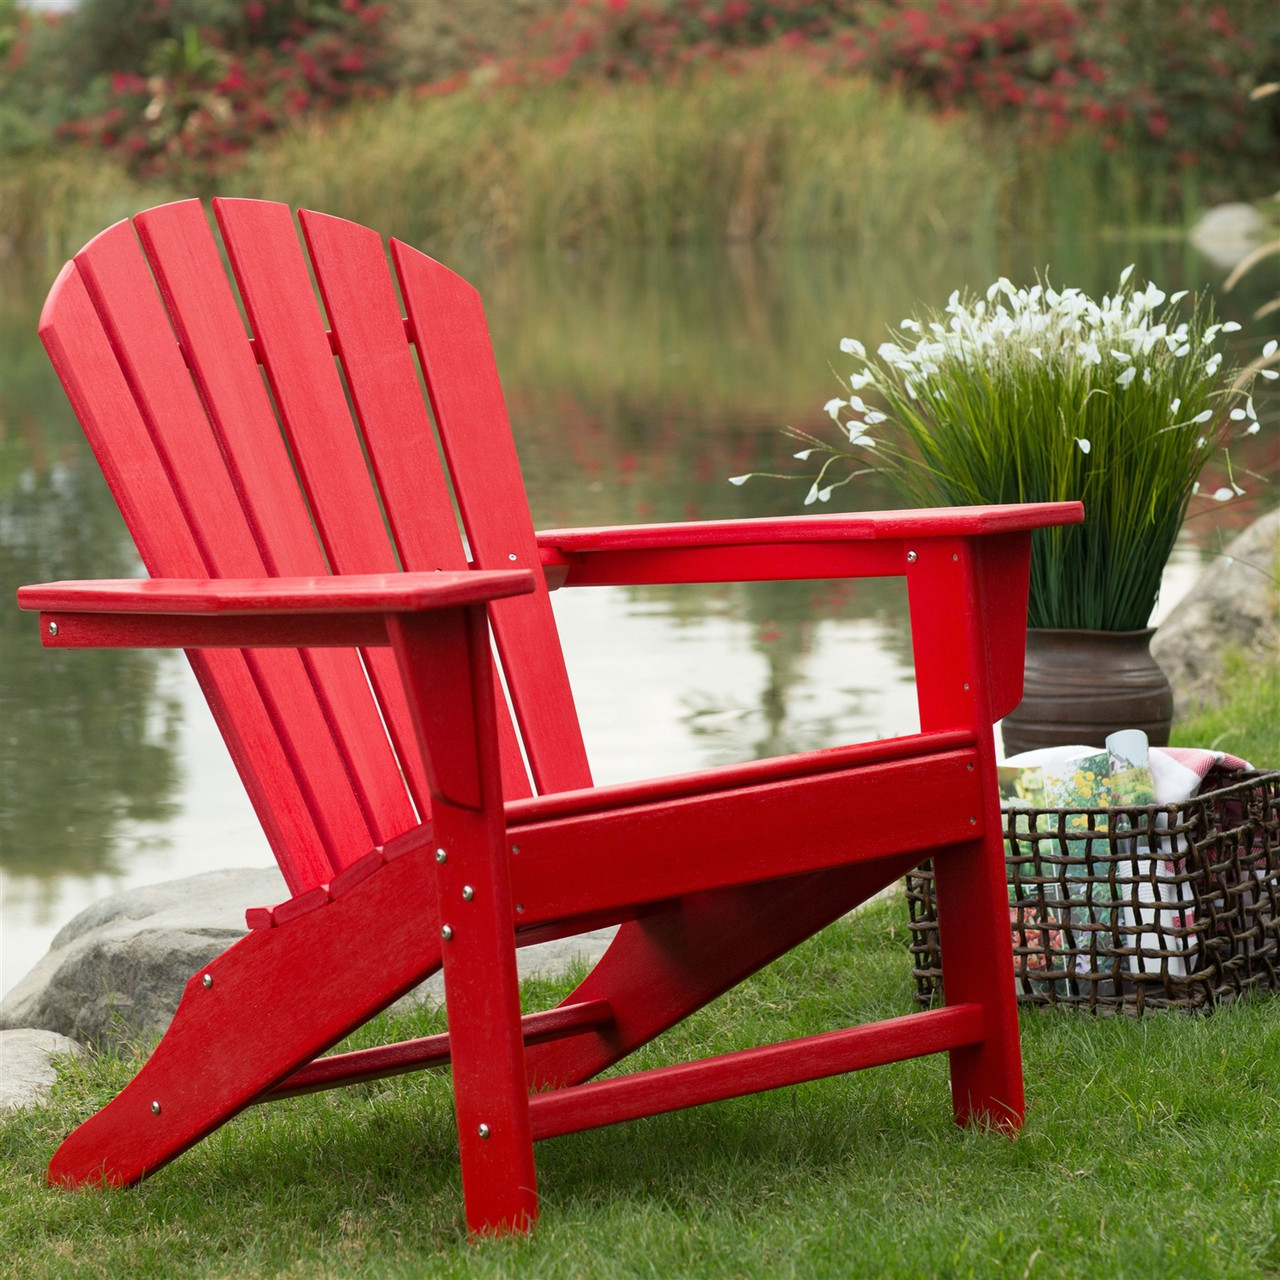 Red Adirondack Chairs Outdoor Patio Seating Garden Adirondack Chair In Red Heavy